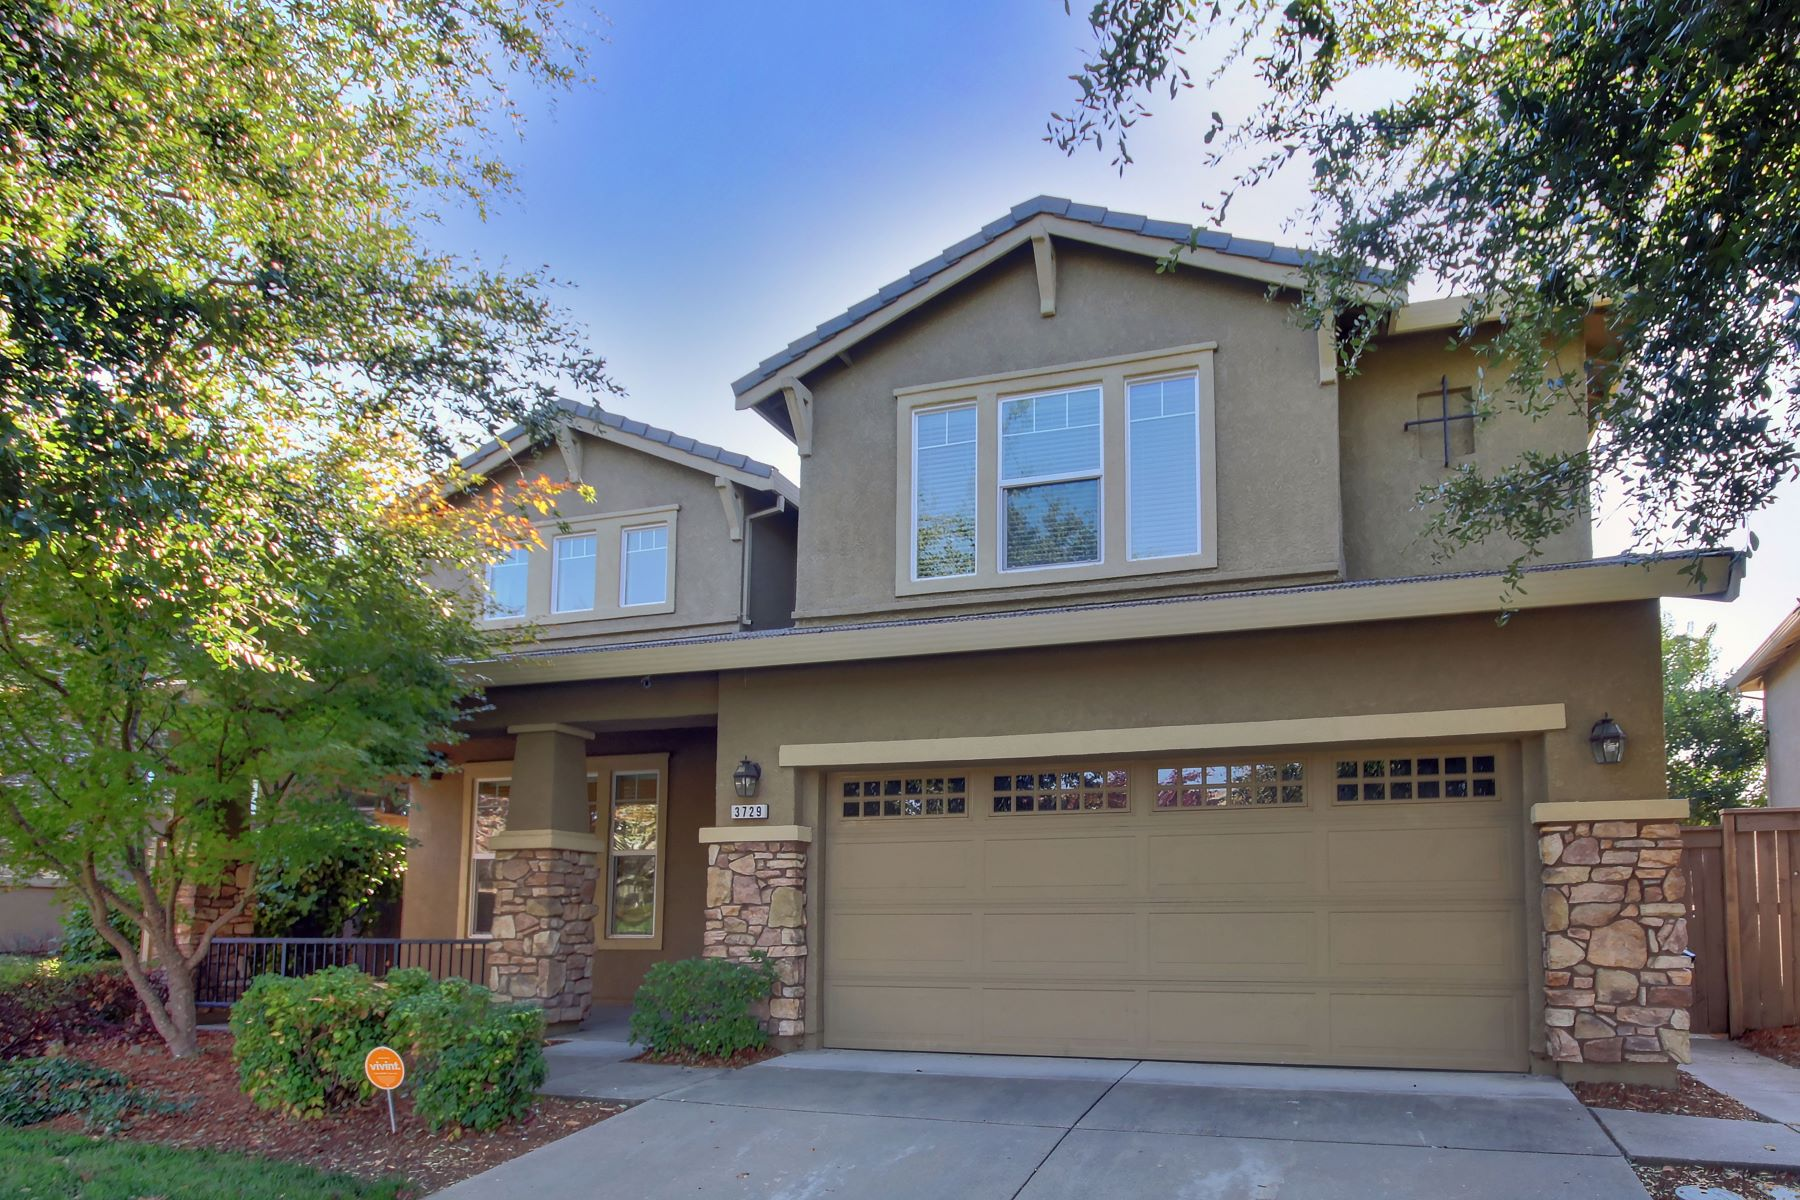 Single Family Homes for Sale at 3729 Archetto Drive, El Dorado Hills, CA 95762 3729 Archetto Drive El Dorado Hills, California 95762 United States